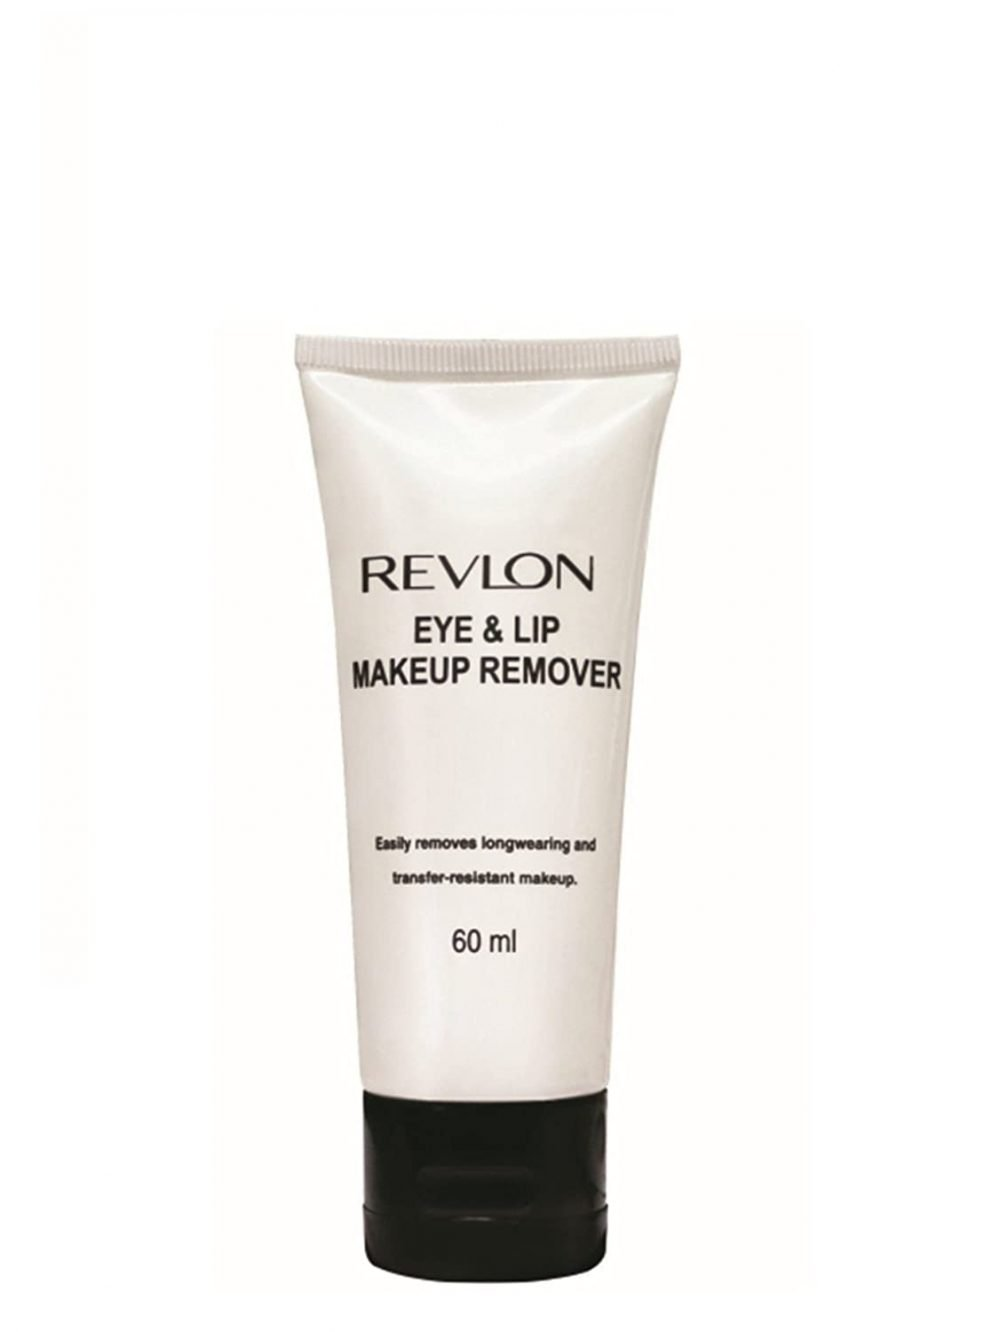 REVLON eye and lip makeup remover, 60ml